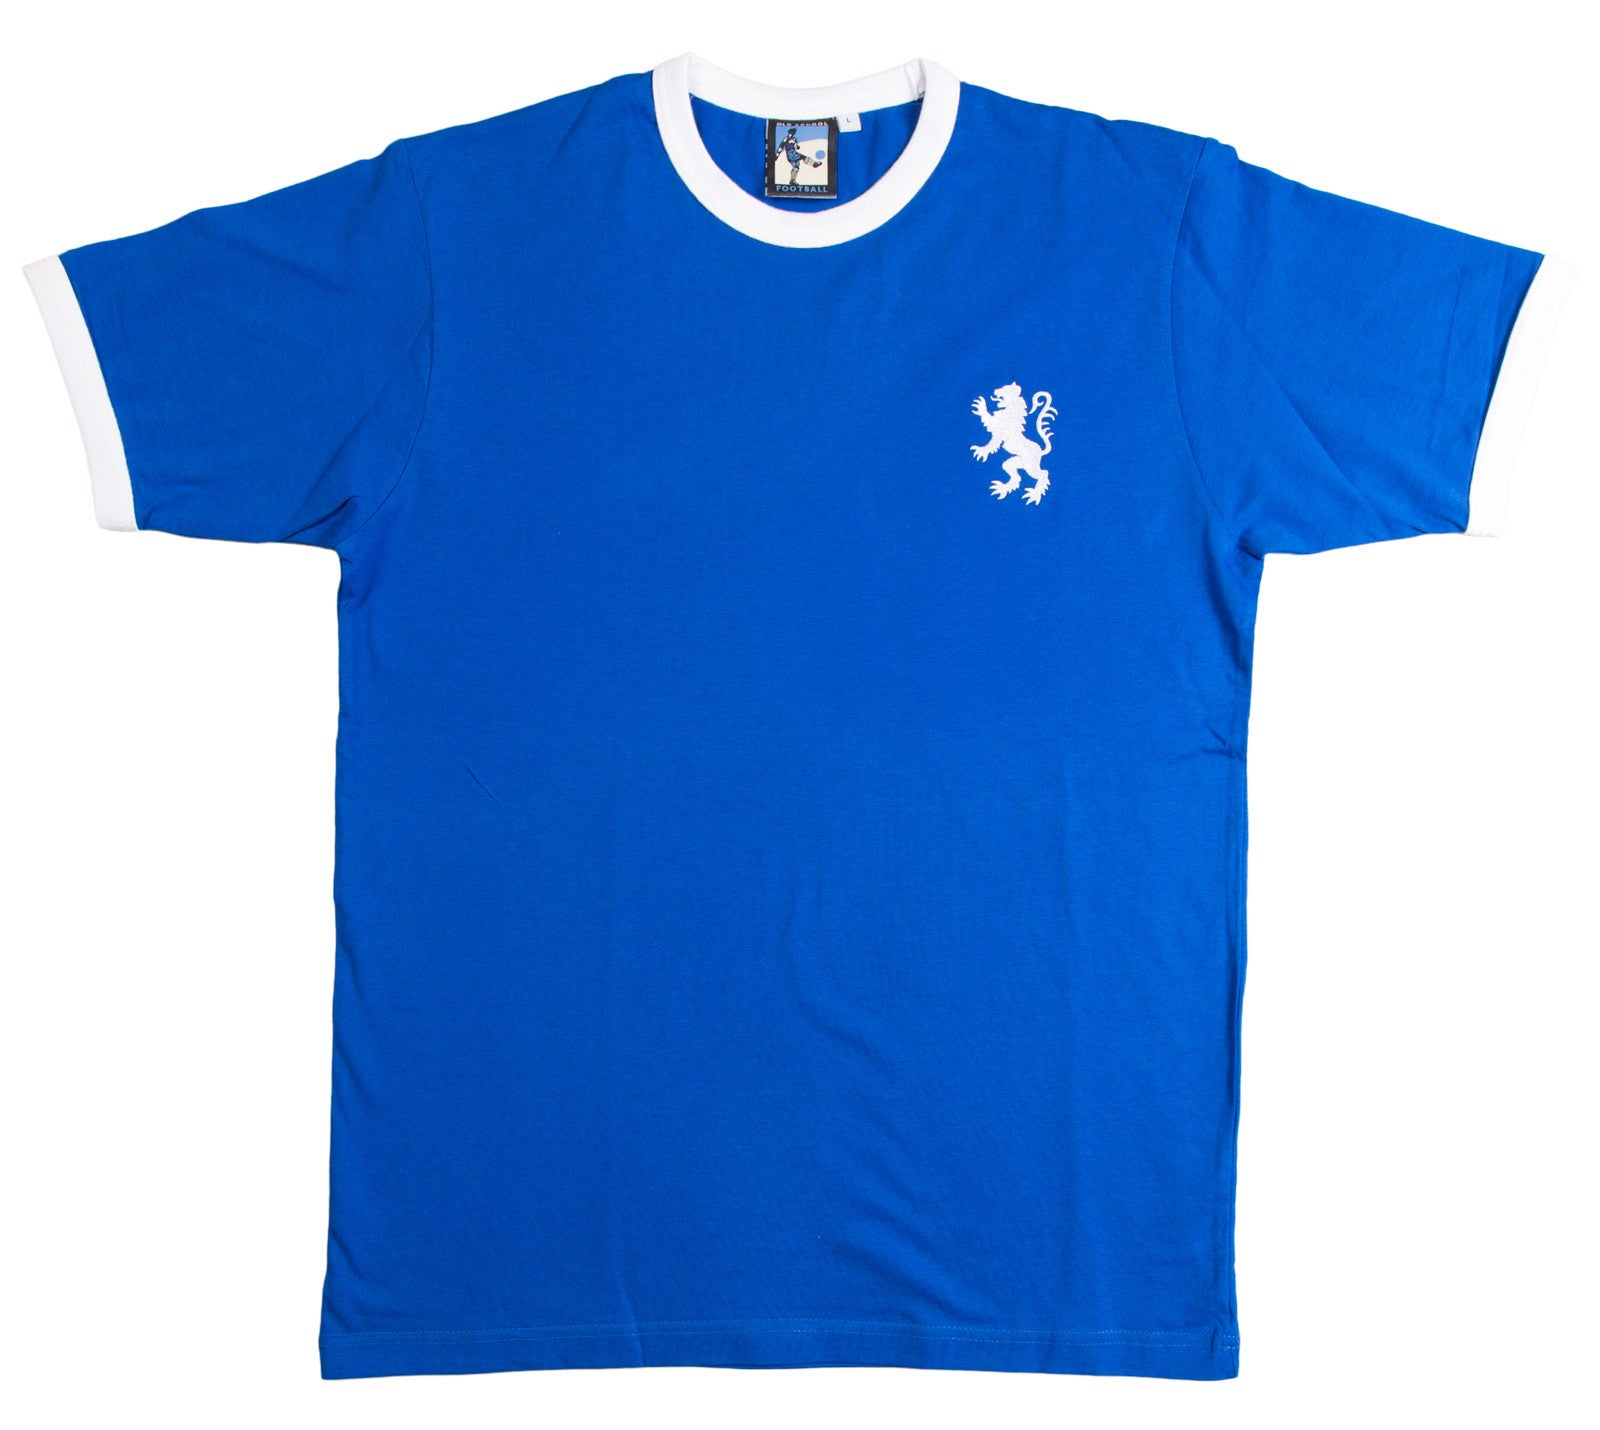 Millwall Retro Football T Shirt 1970s - T-shirt